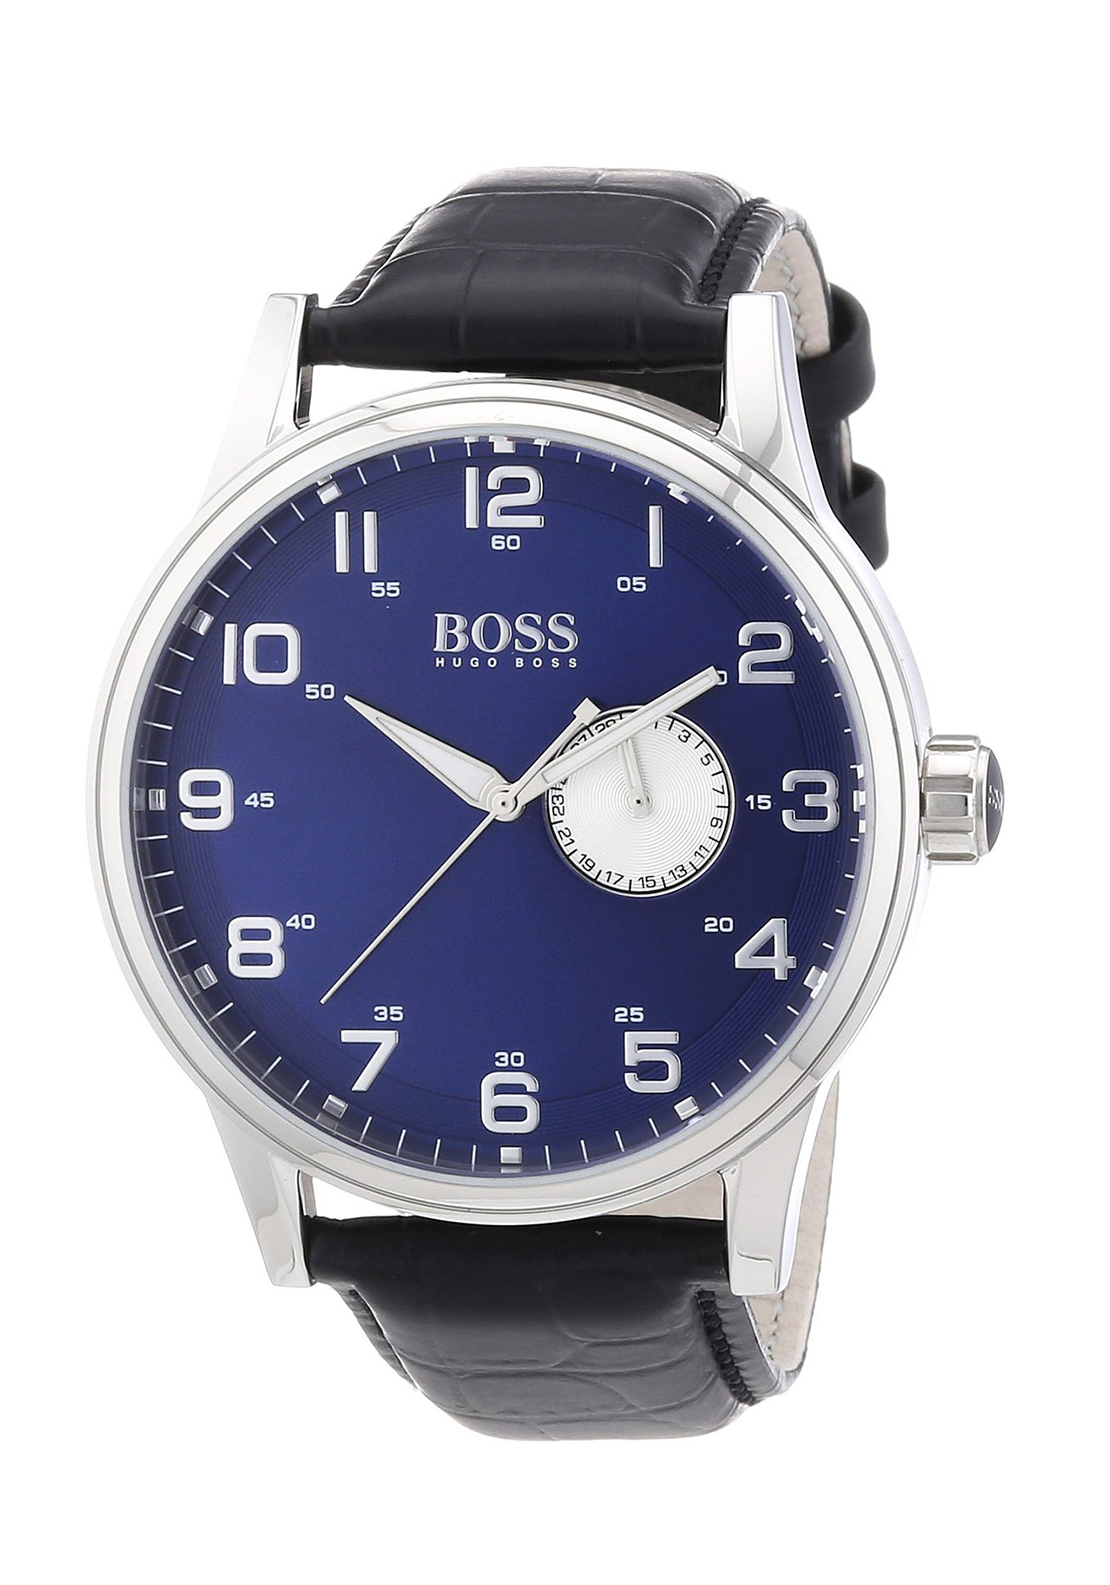 Hugo Boss 1512790 Men's Leather Watch, Black